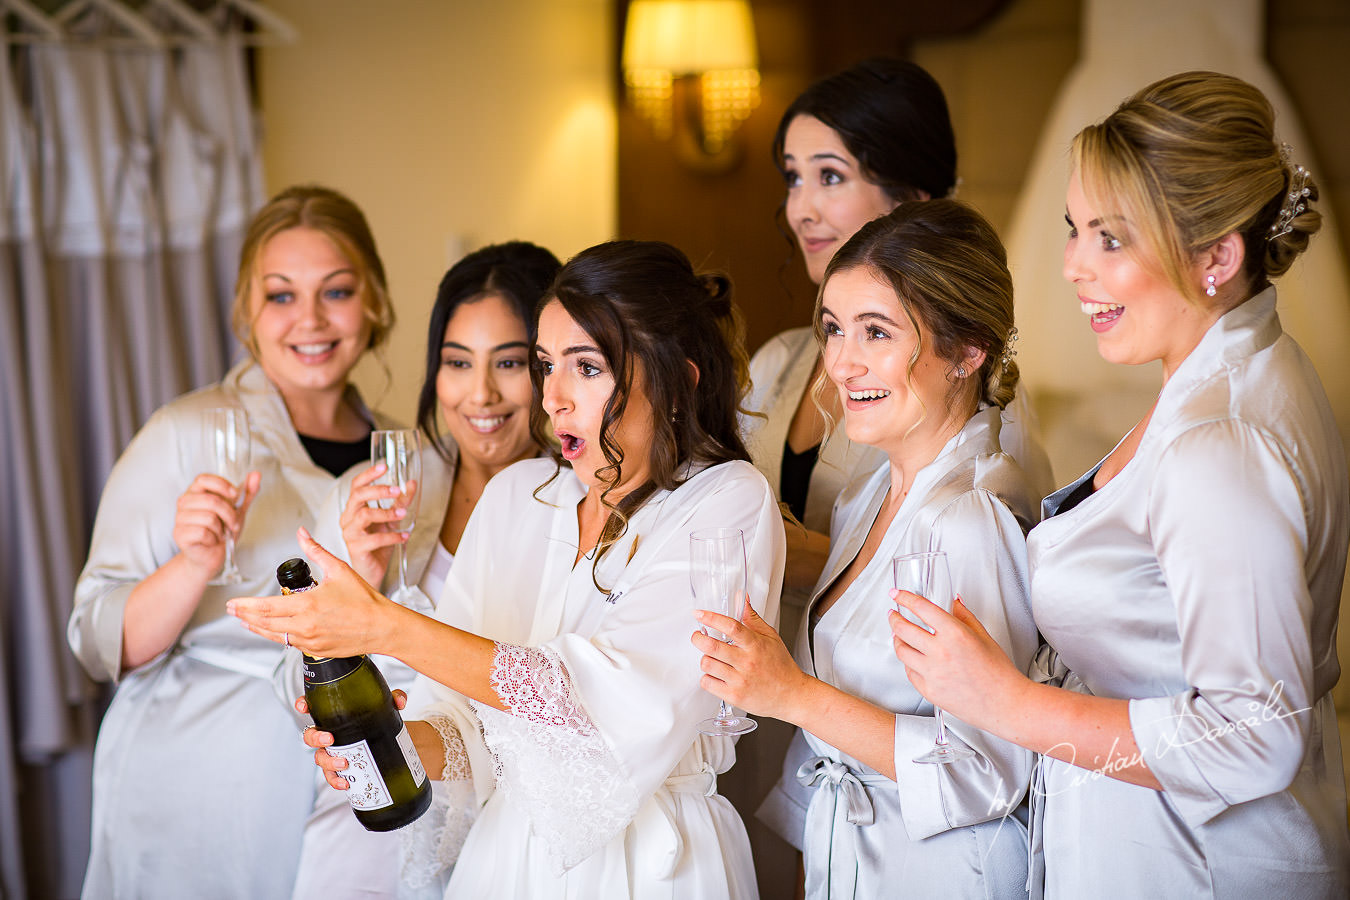 Bride opening champagne during a Beautiful Wedding at Elias Beach Hotel captured by Cyprus Photographer Cristian Dascalu.